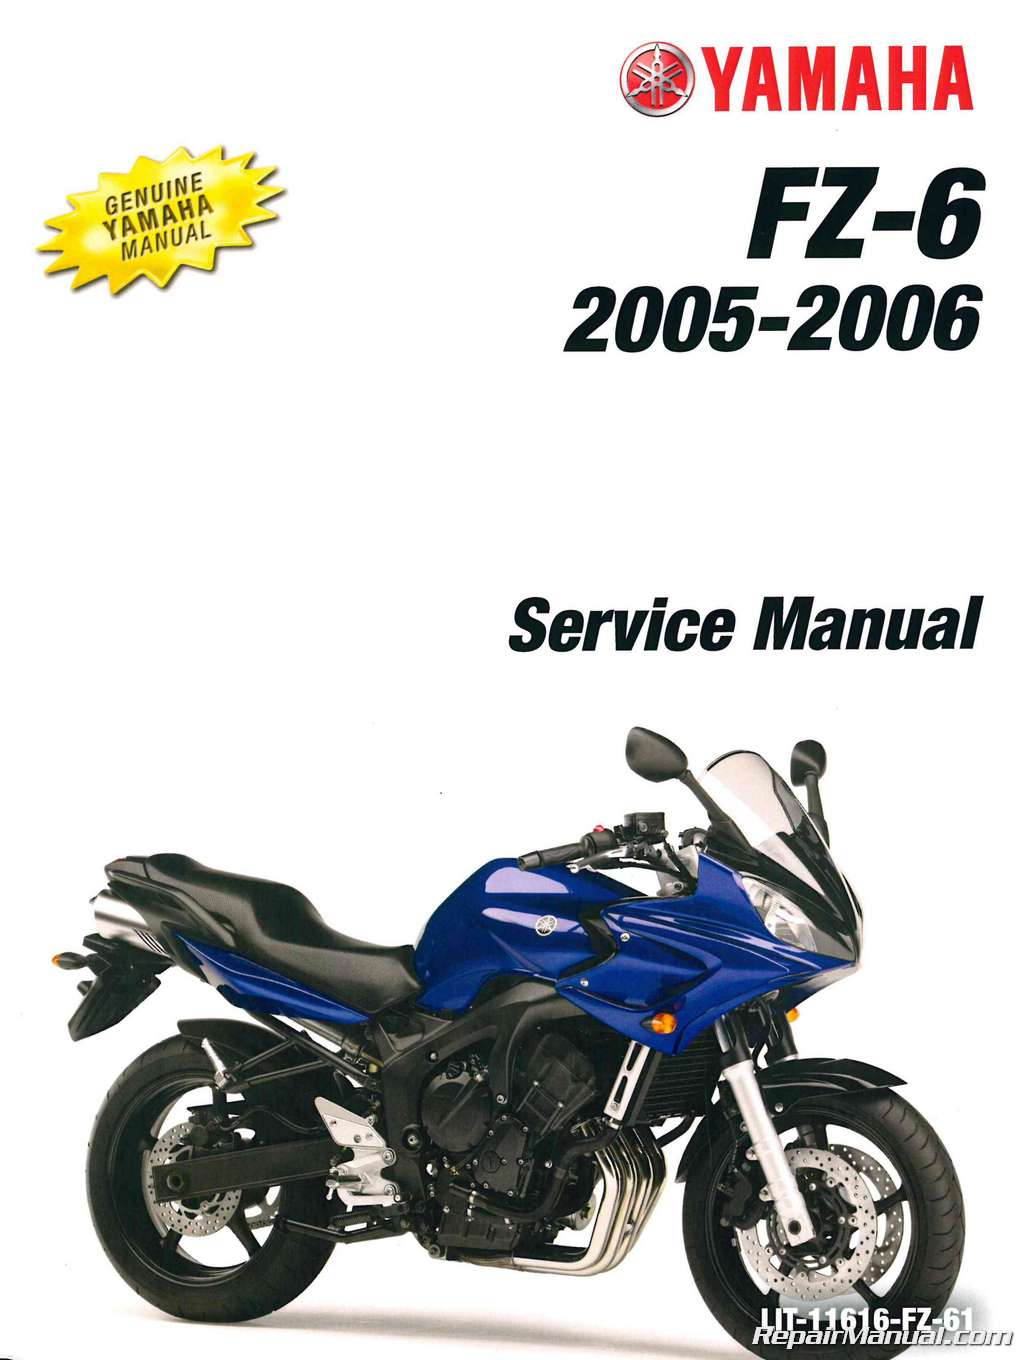 Yamaha Fz Owners Manual